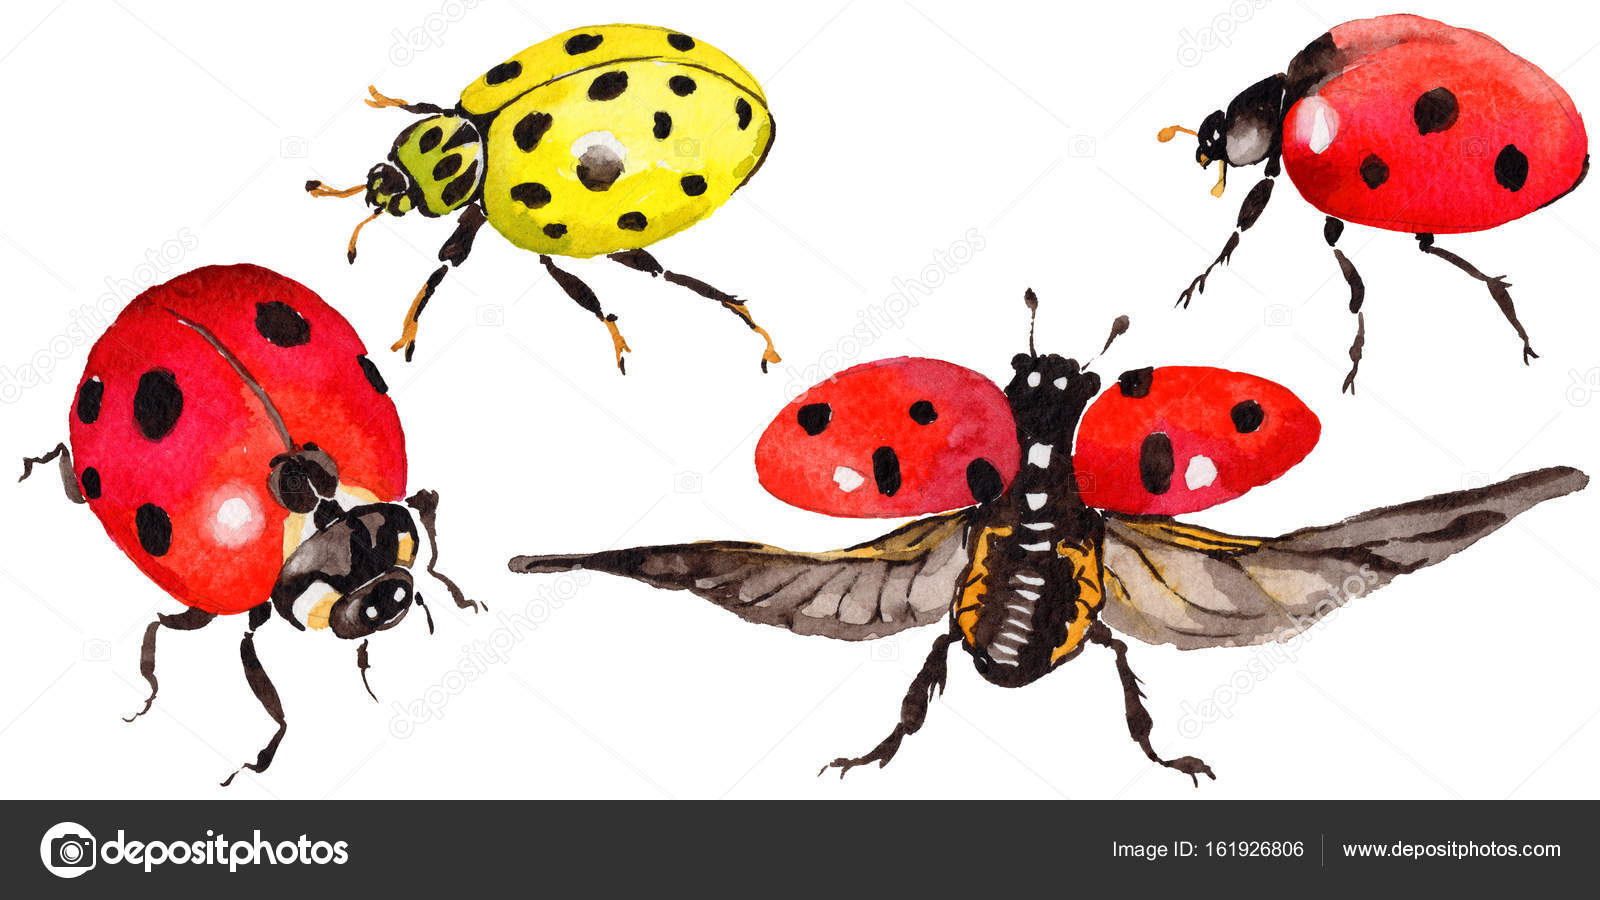 39eefb002a57e Exotic ladybug wild insect in a watercolor style isolated. — Stock Photo